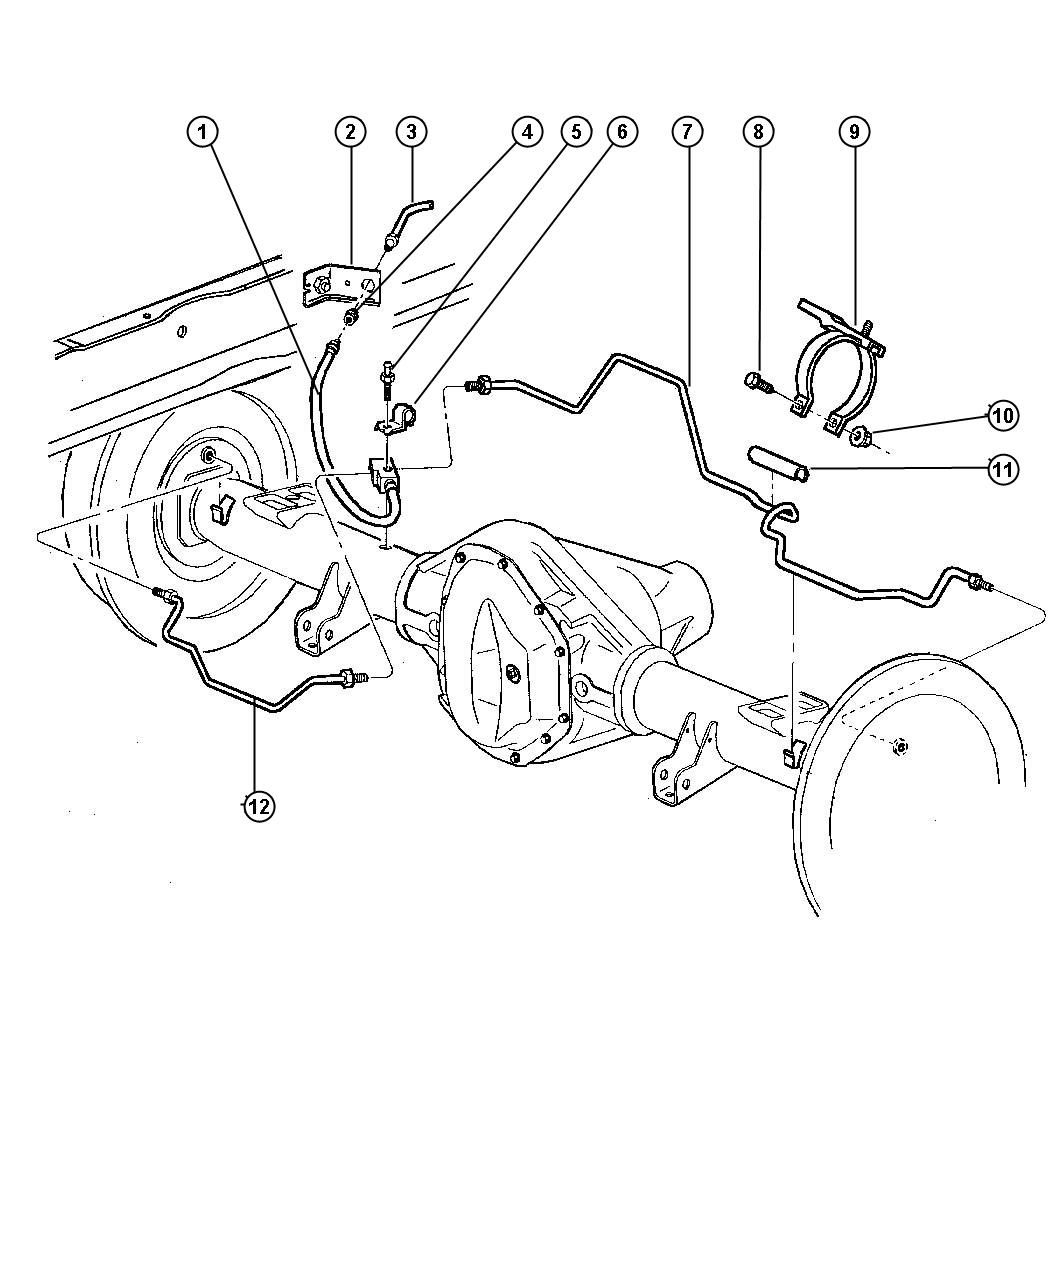 Wiring diagram for a 1996 ram 2500 v10 automatic 4x4 further wiring diagram 2005 chevy tahoe